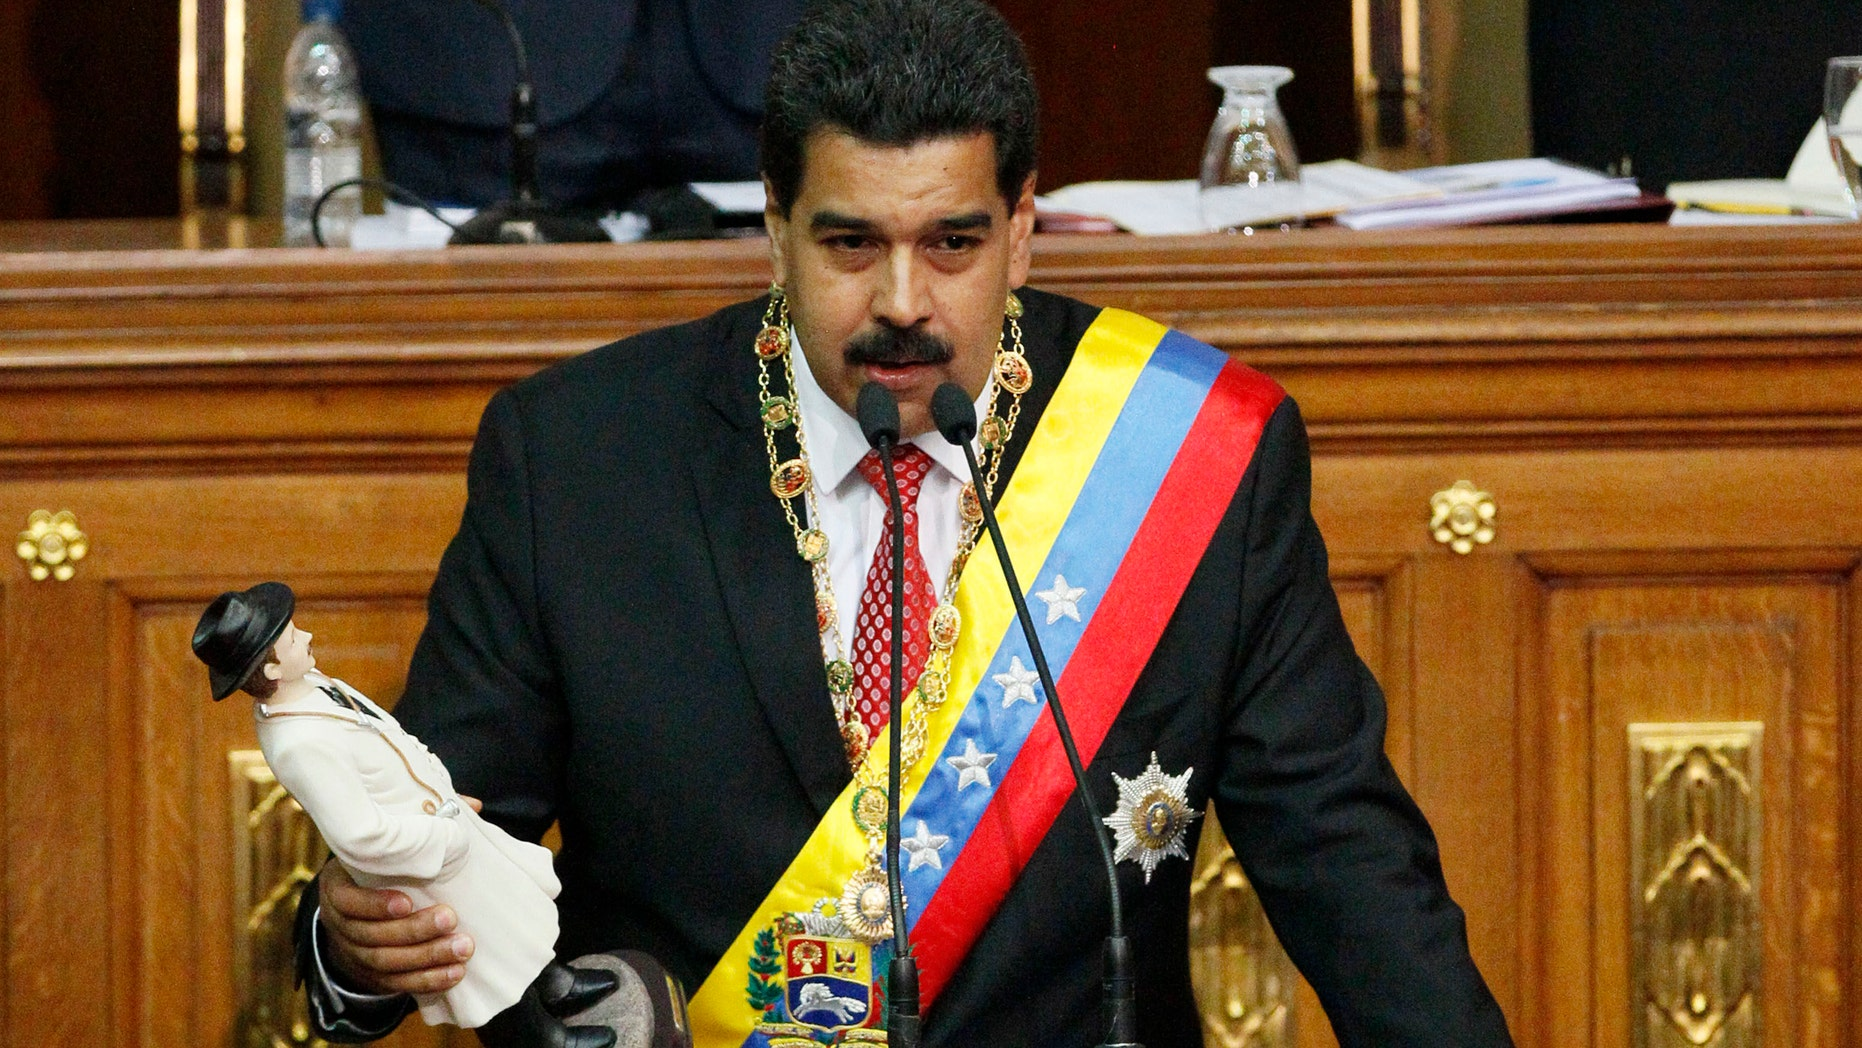 Maduro holds a statue of the beloved physician folk-saint Dr. Jose Gregorio Hernandez as he delivers a speech at the National Assembly in Caracas, Venezuela, Tuesday, Oct. 8, 2013.